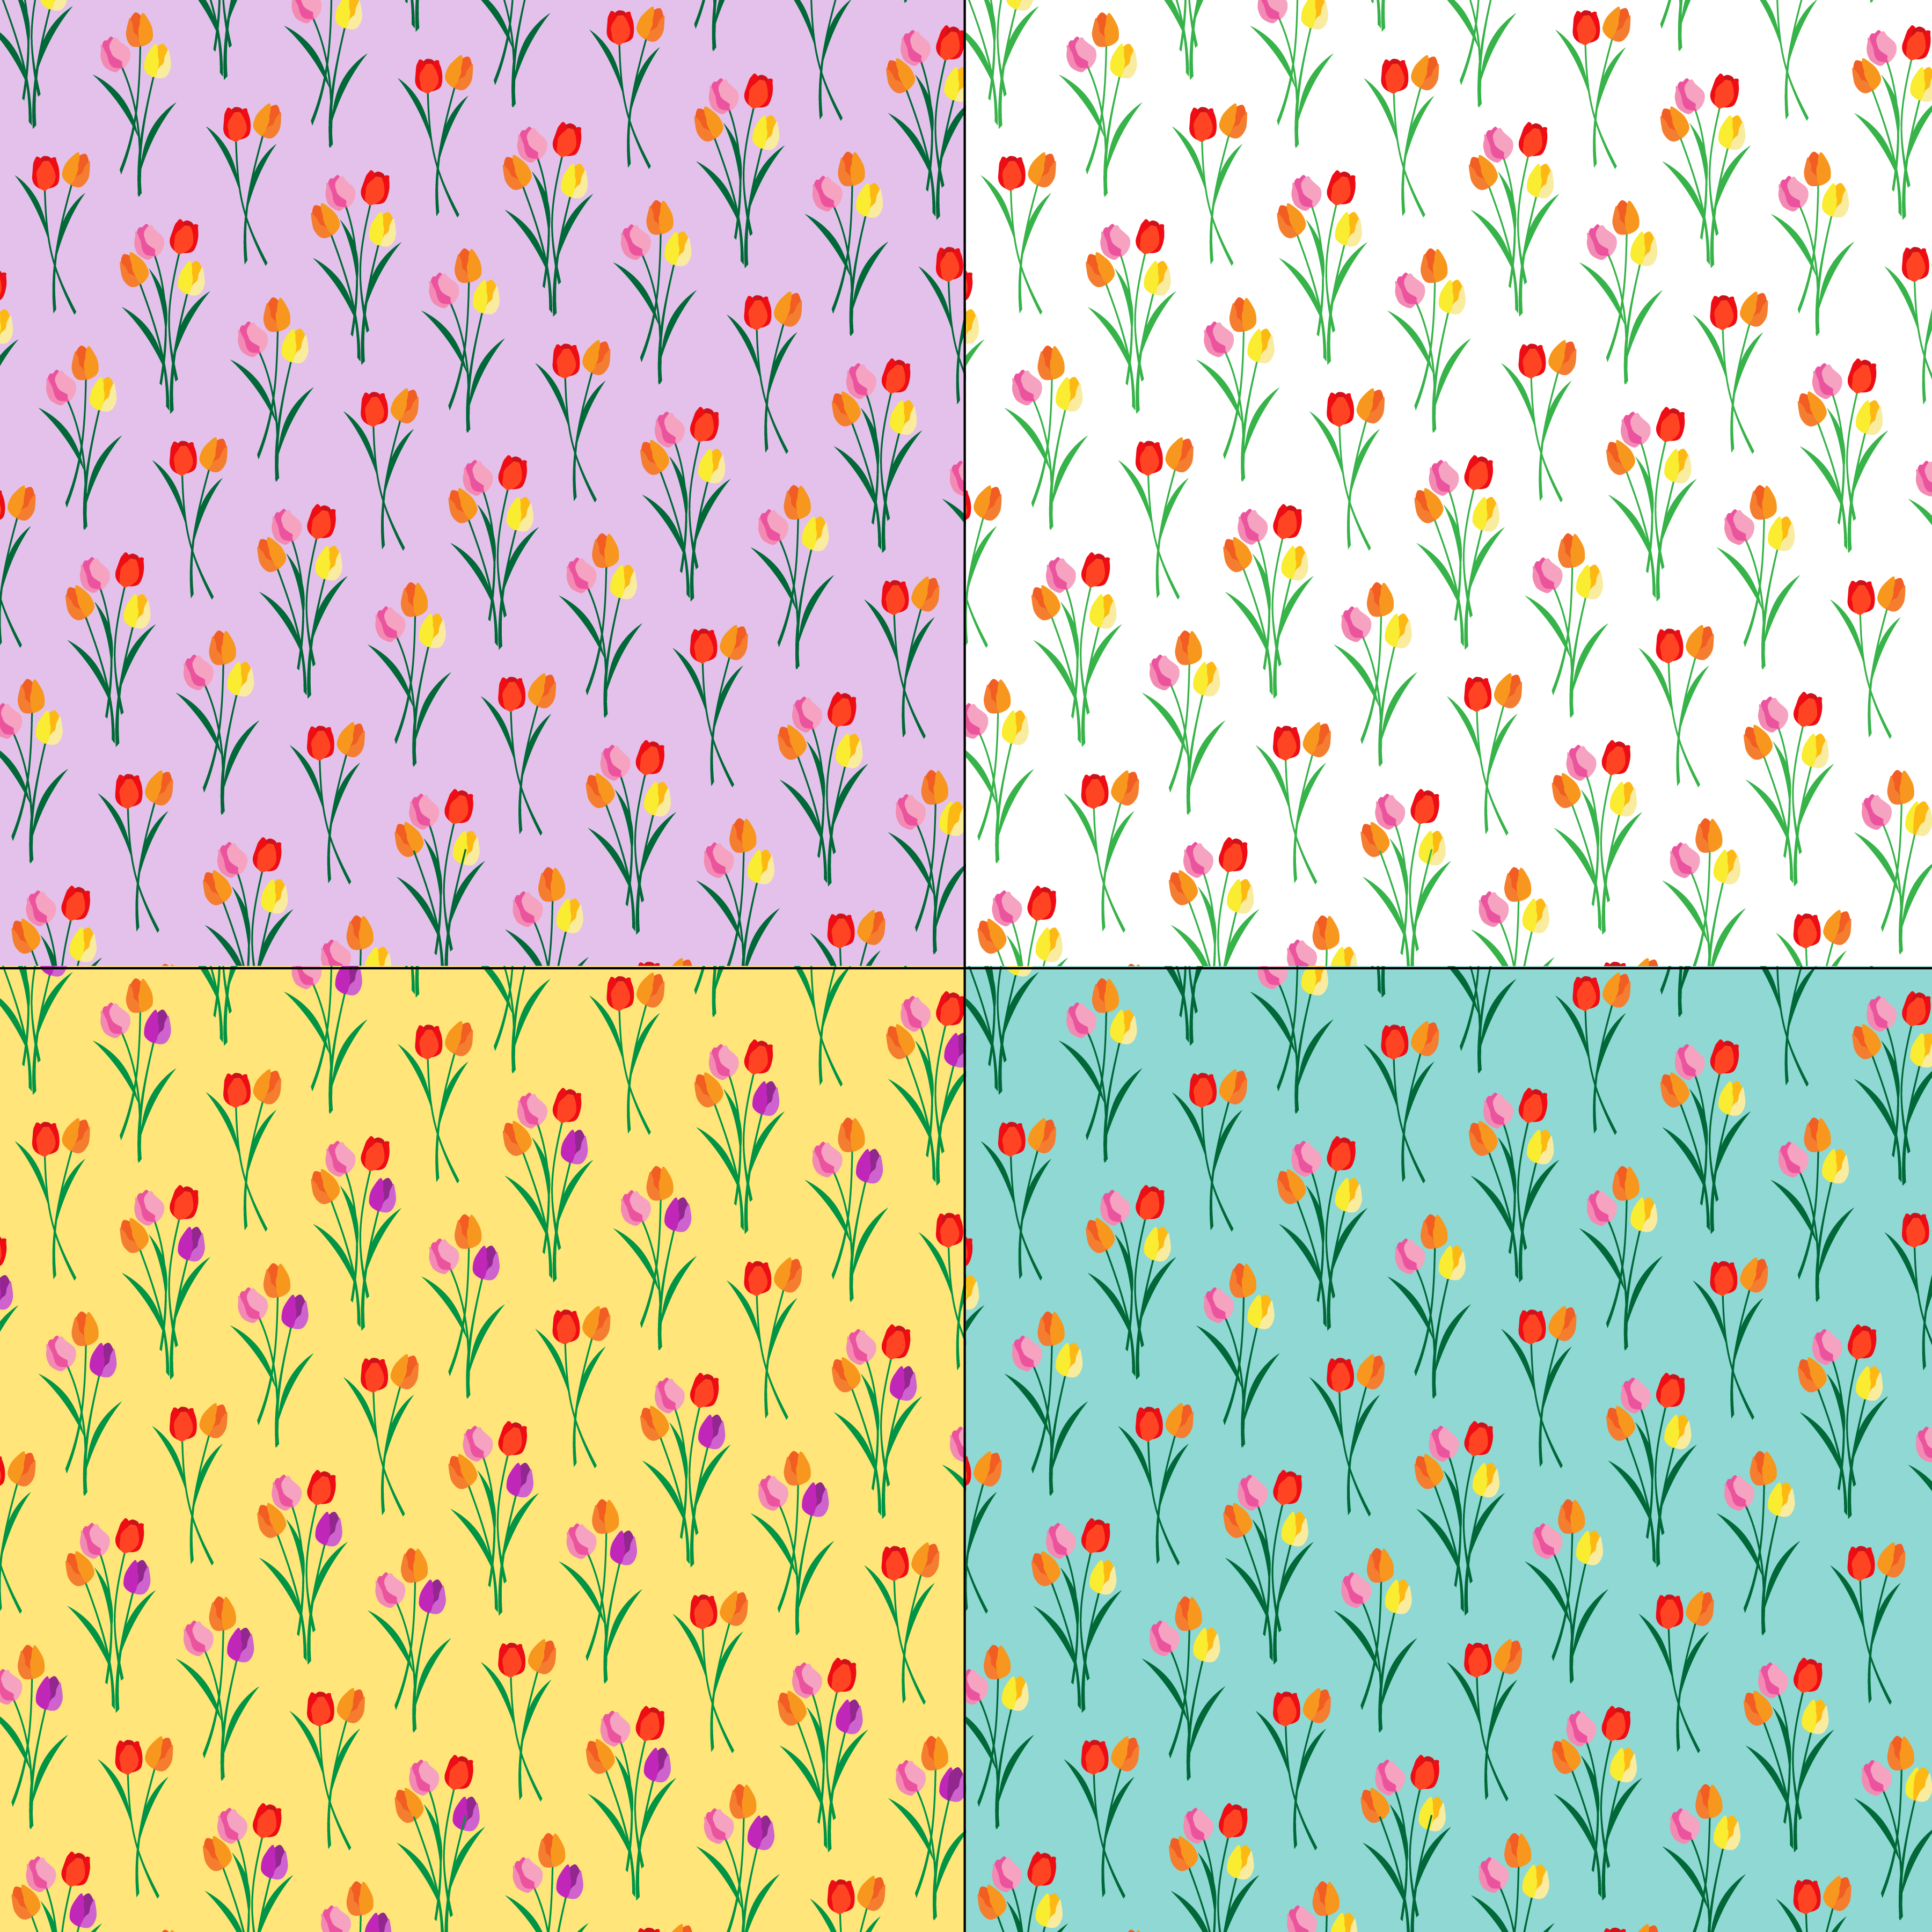 Tulip Bouquets Floral Patterns On Pastel Backgrounds Download